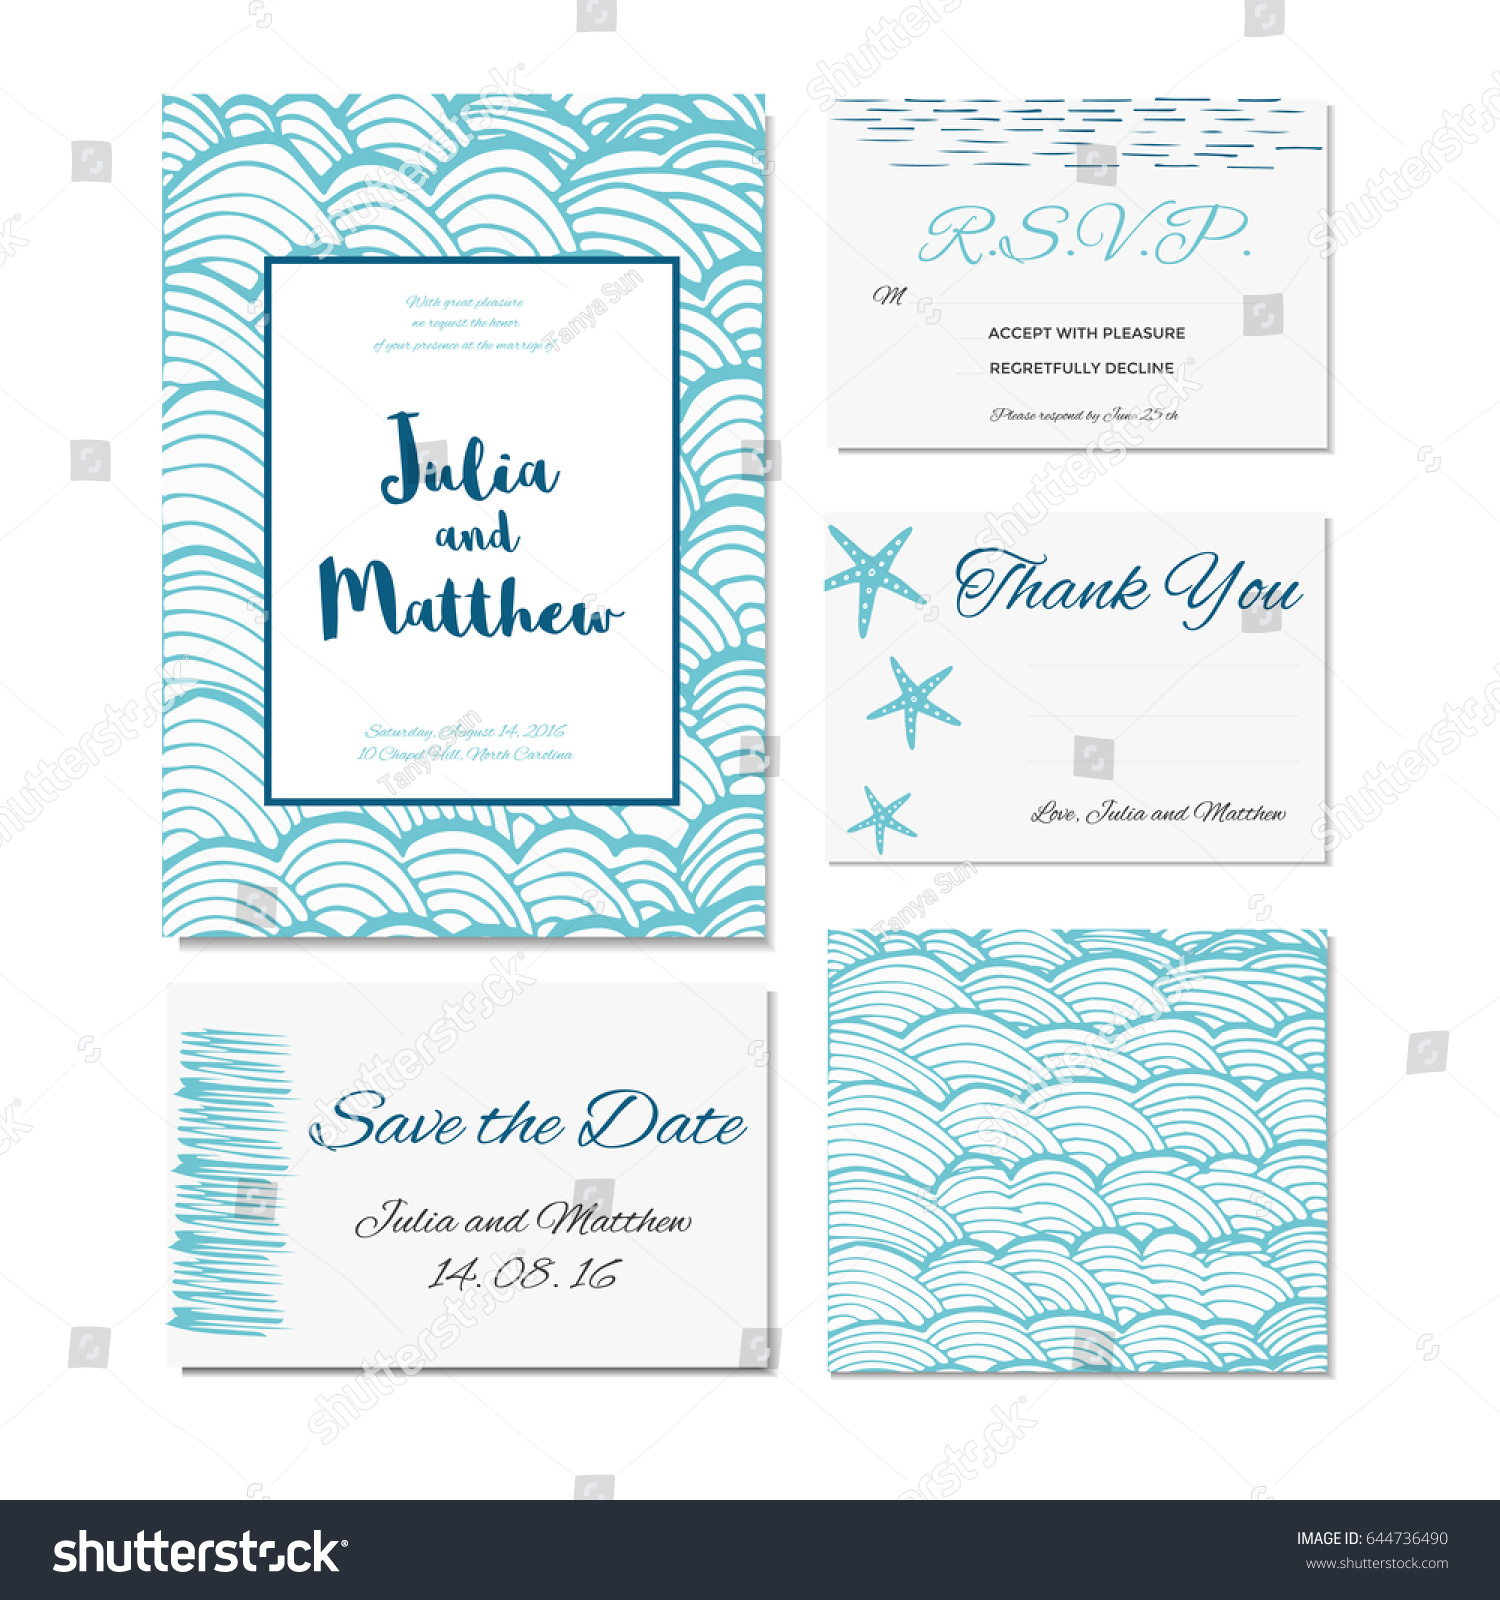 Wedding invitation thank you save date stock vector 2018 644736490 wedding invitation thank you save the date baby shower menu information stopboris Image collections